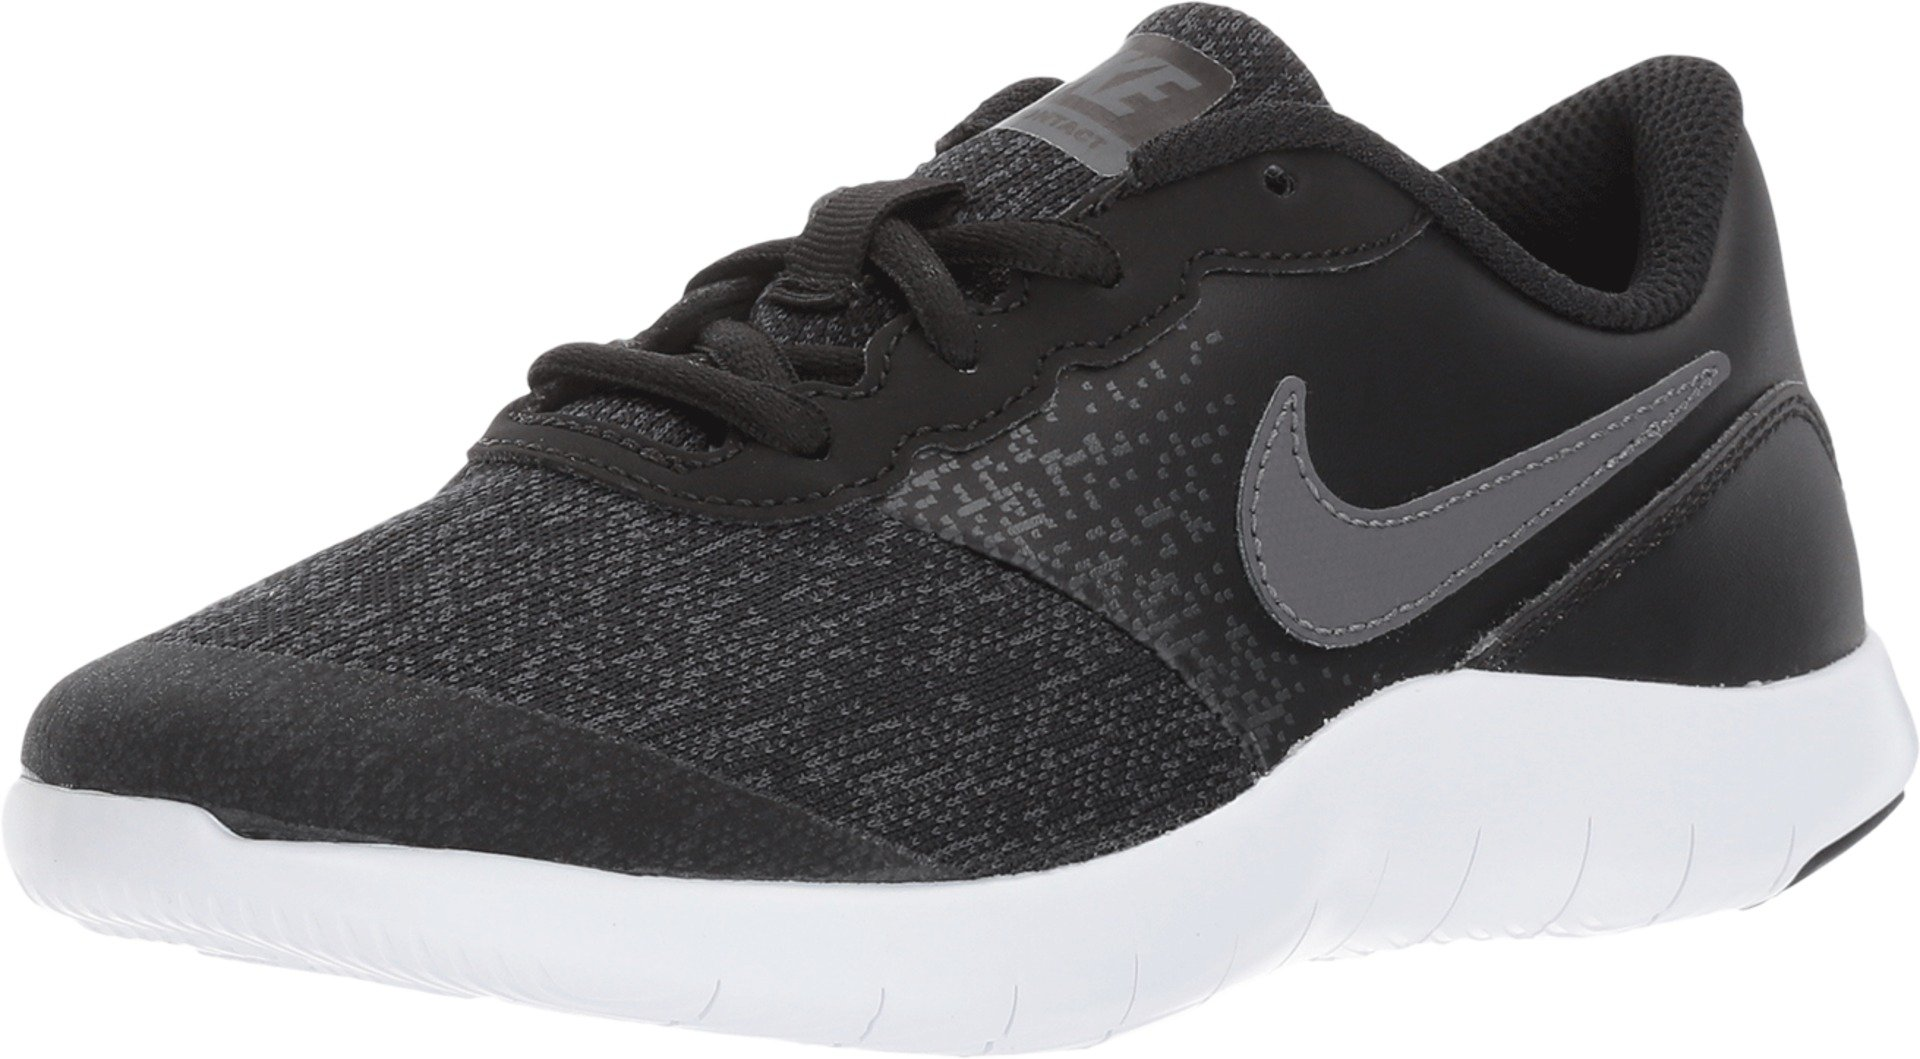 Nike Kids Flex Contact (PS) Black DRK Gry Anthracite White Size 1